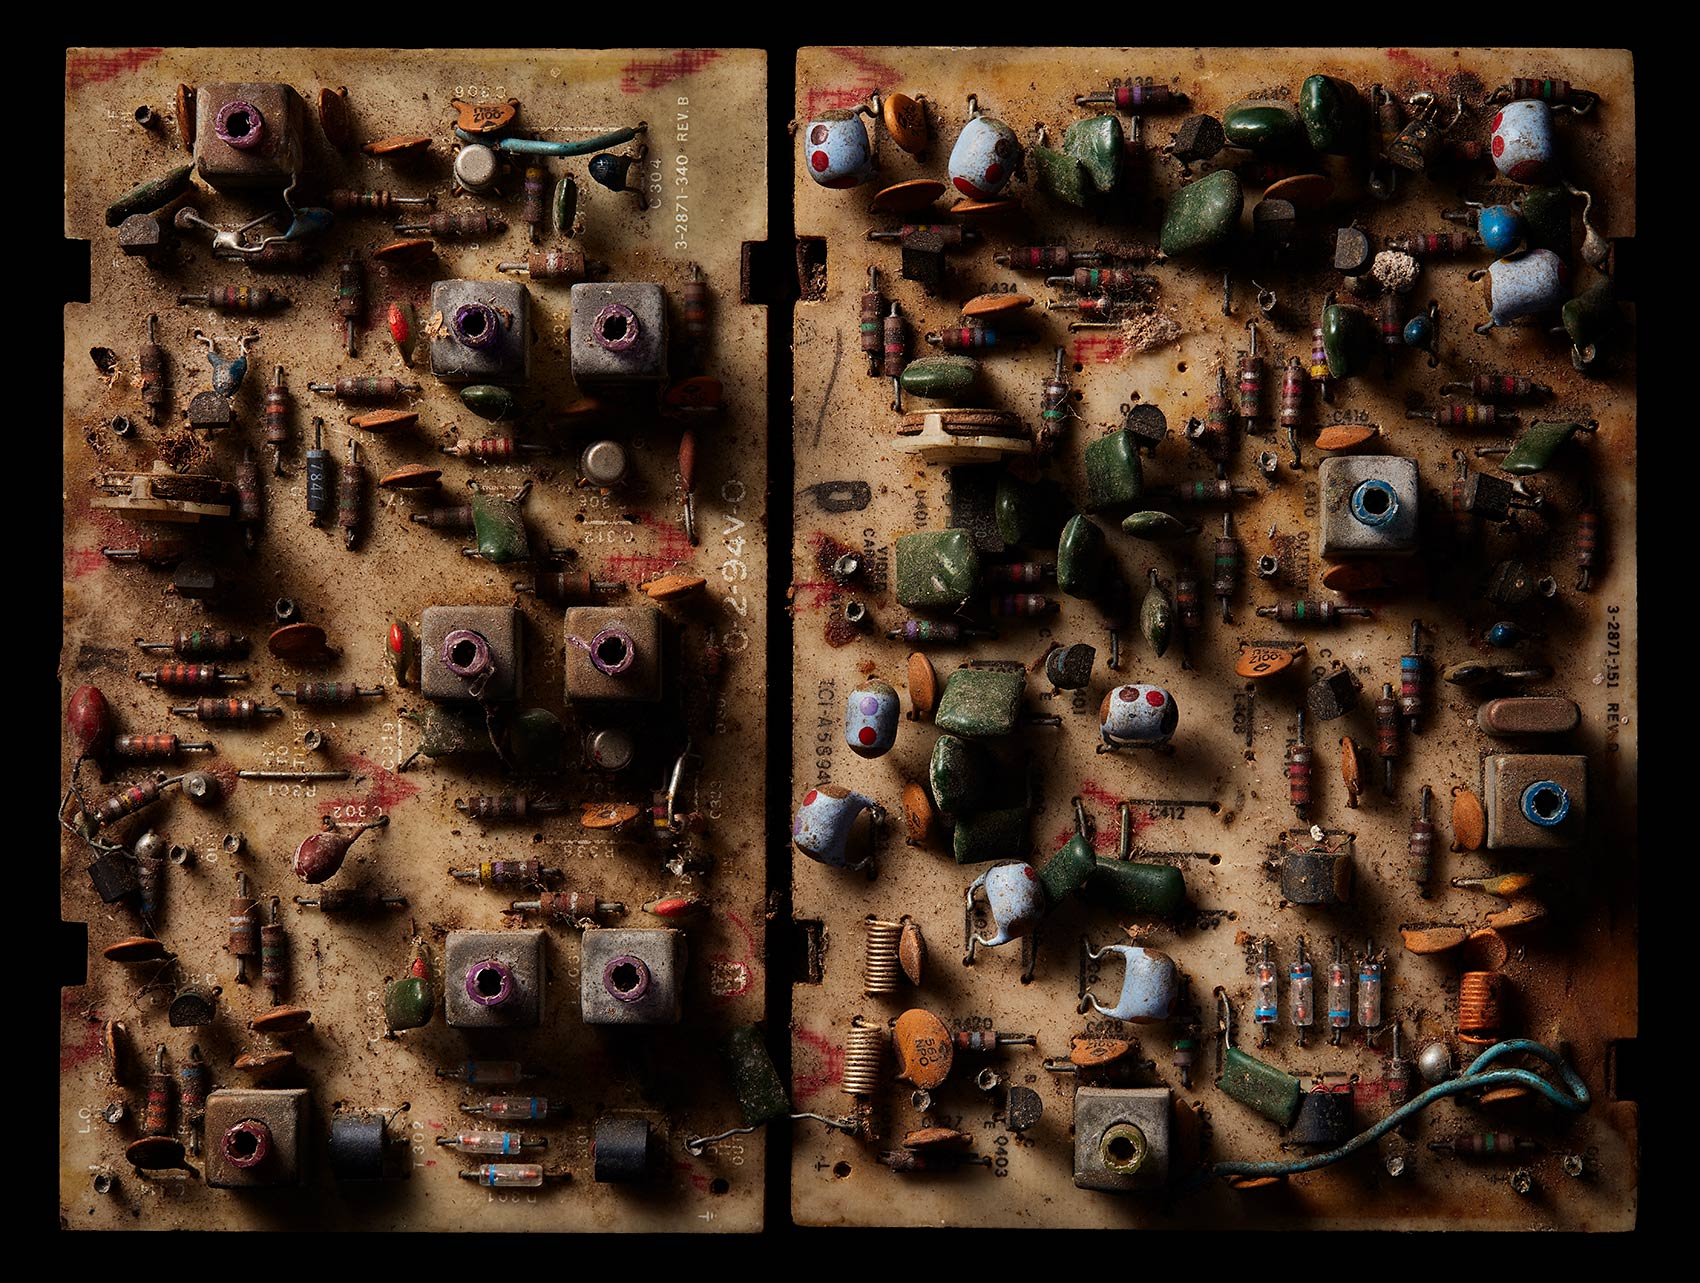 Macro photography of antique circuit boards.